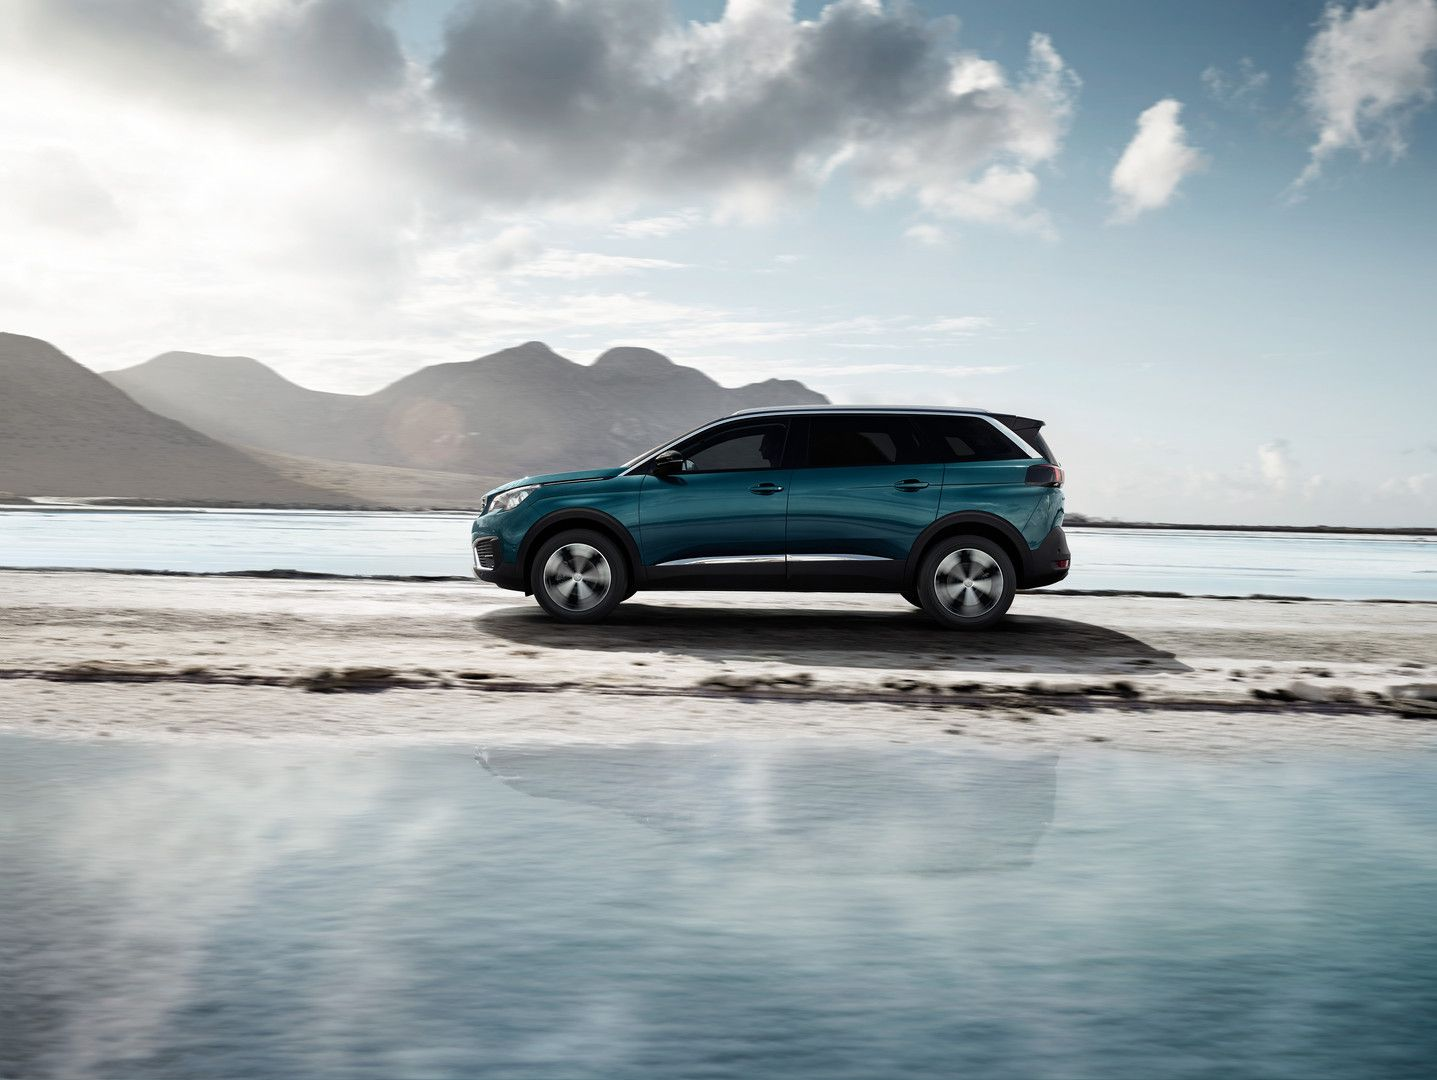 New Suv Peugeot 5008 Photos And Videos Of The 7 Seater Suv Peugeot